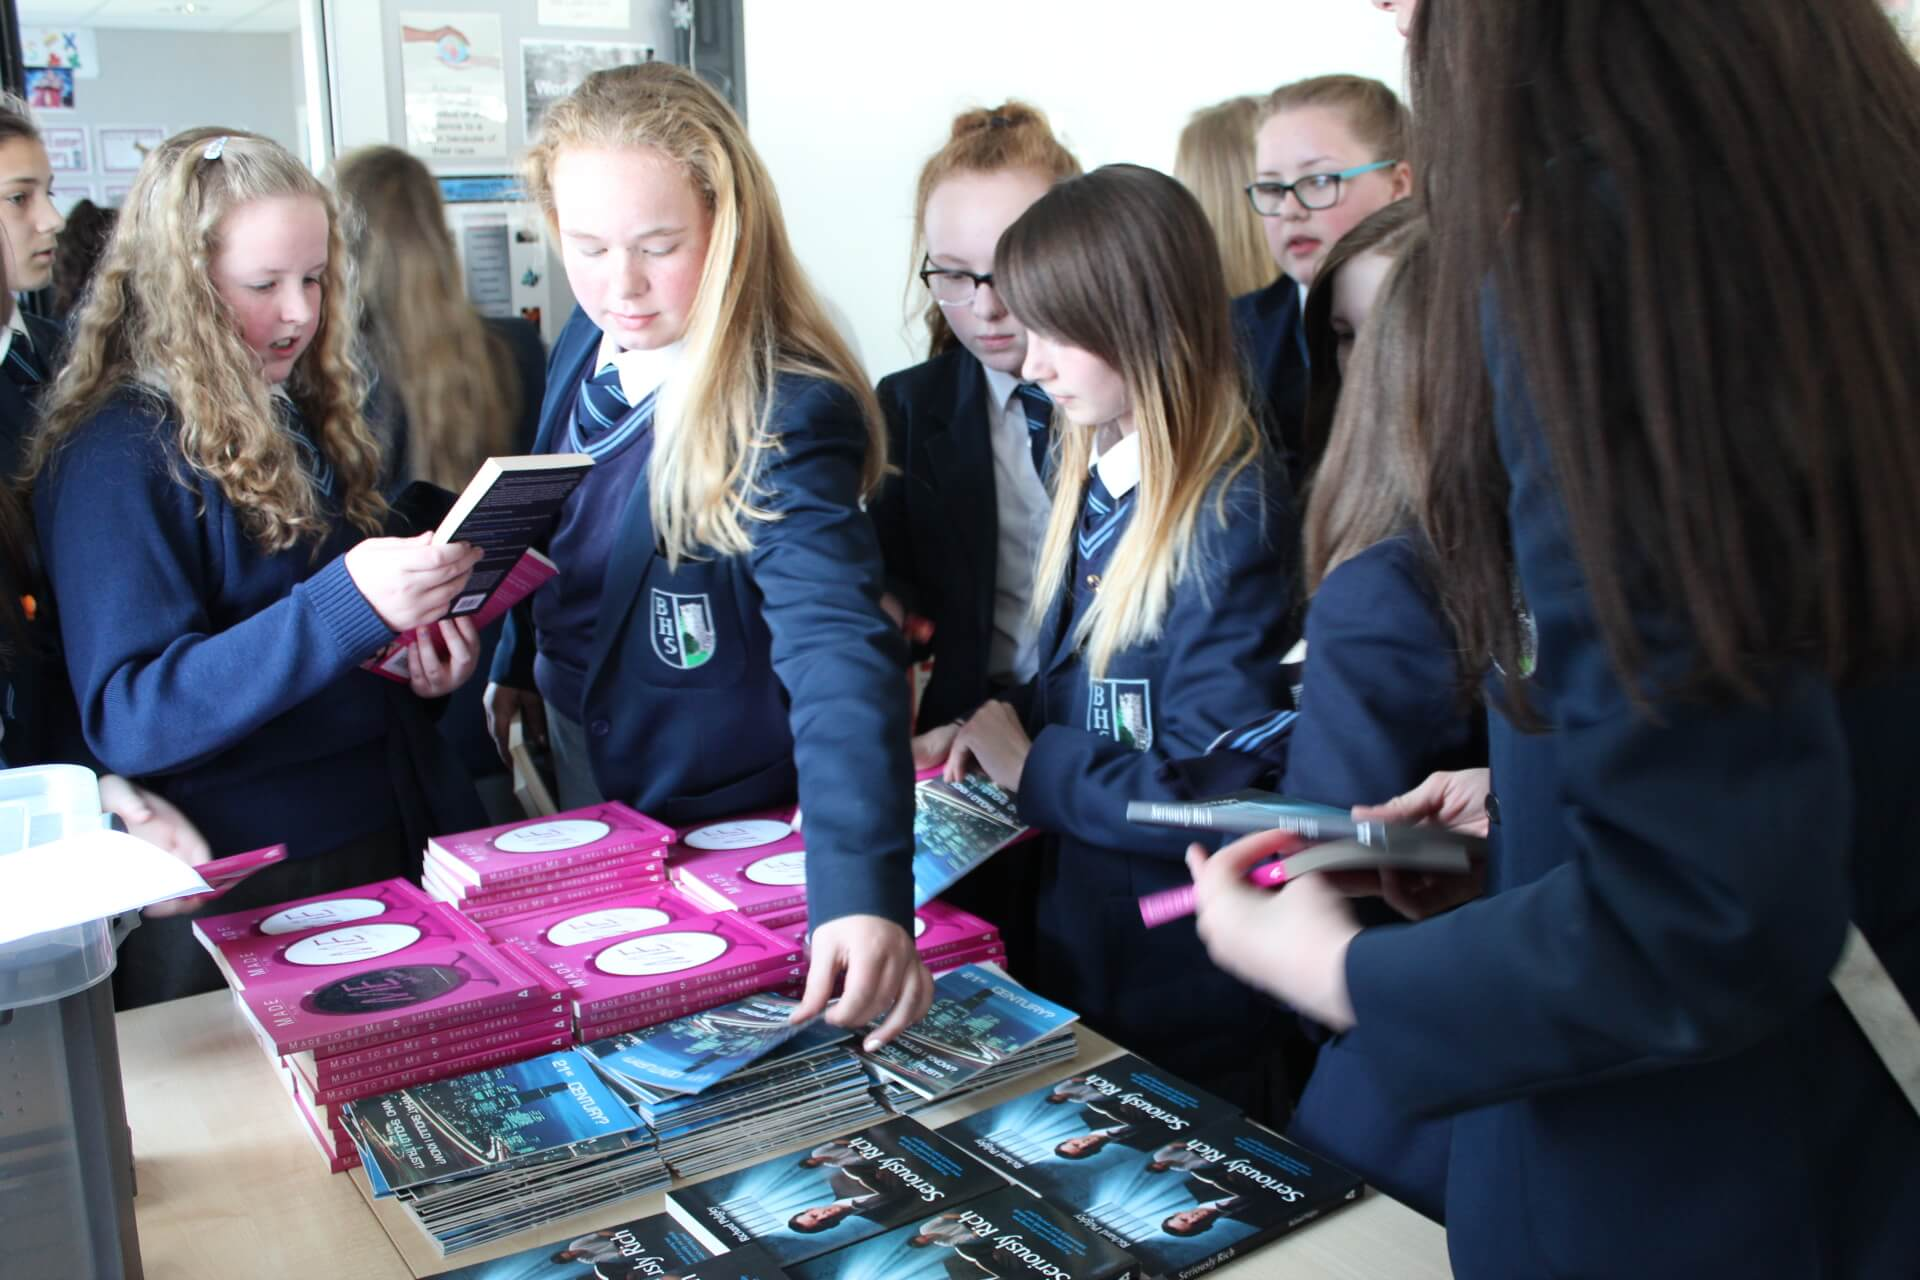 LMI Youth and School Outreach promoting Jesus in schools throughout Northern Ireland and Ireland.